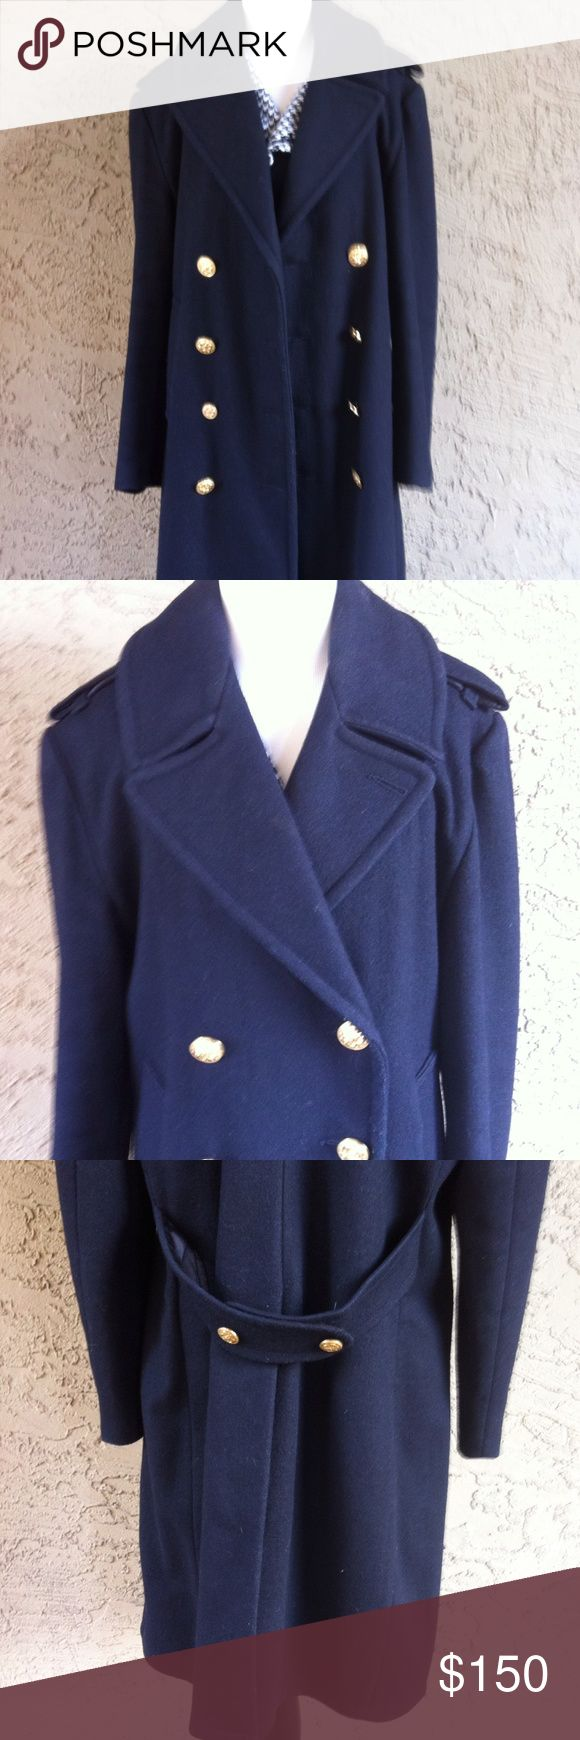 *LIKE NEW* Vintage Fox Knapp Wool Navy Pea Coat Size 40 Fox Knapp wool fully lined long sleeve very dark navy pea coat with functioning buttons and holes on both sides of coat as well as two front *pockets lined with fleece* for extra warmth and button up slit in back. This coat is vintage but it is in EXCELLENT *LIKE NEW* condition with no damage or staining. Fox Knapp Jackets & Coats Pea Coats